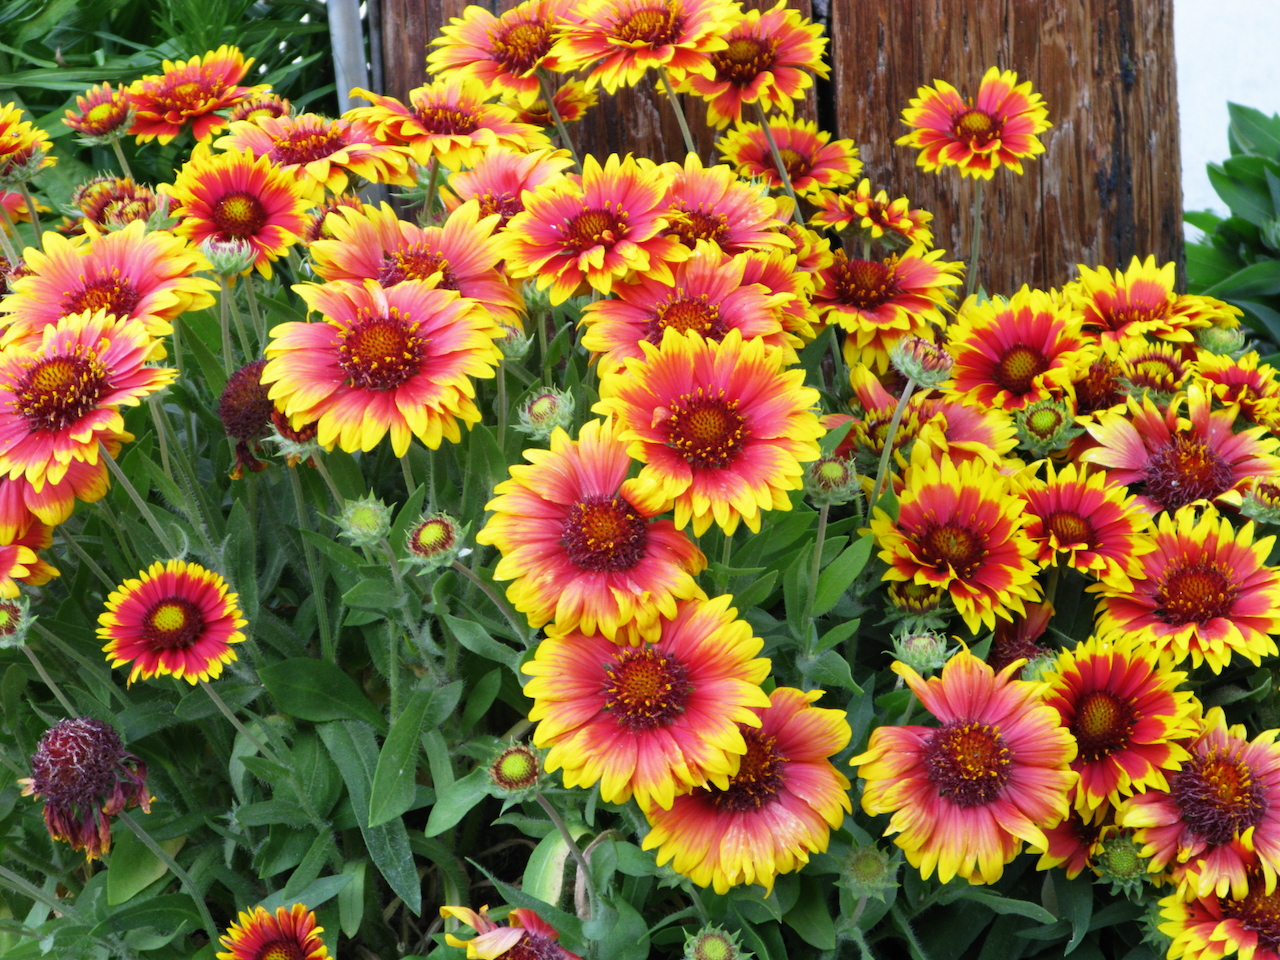 Yellow and orange and pink Gaillardia grouped together in a garden